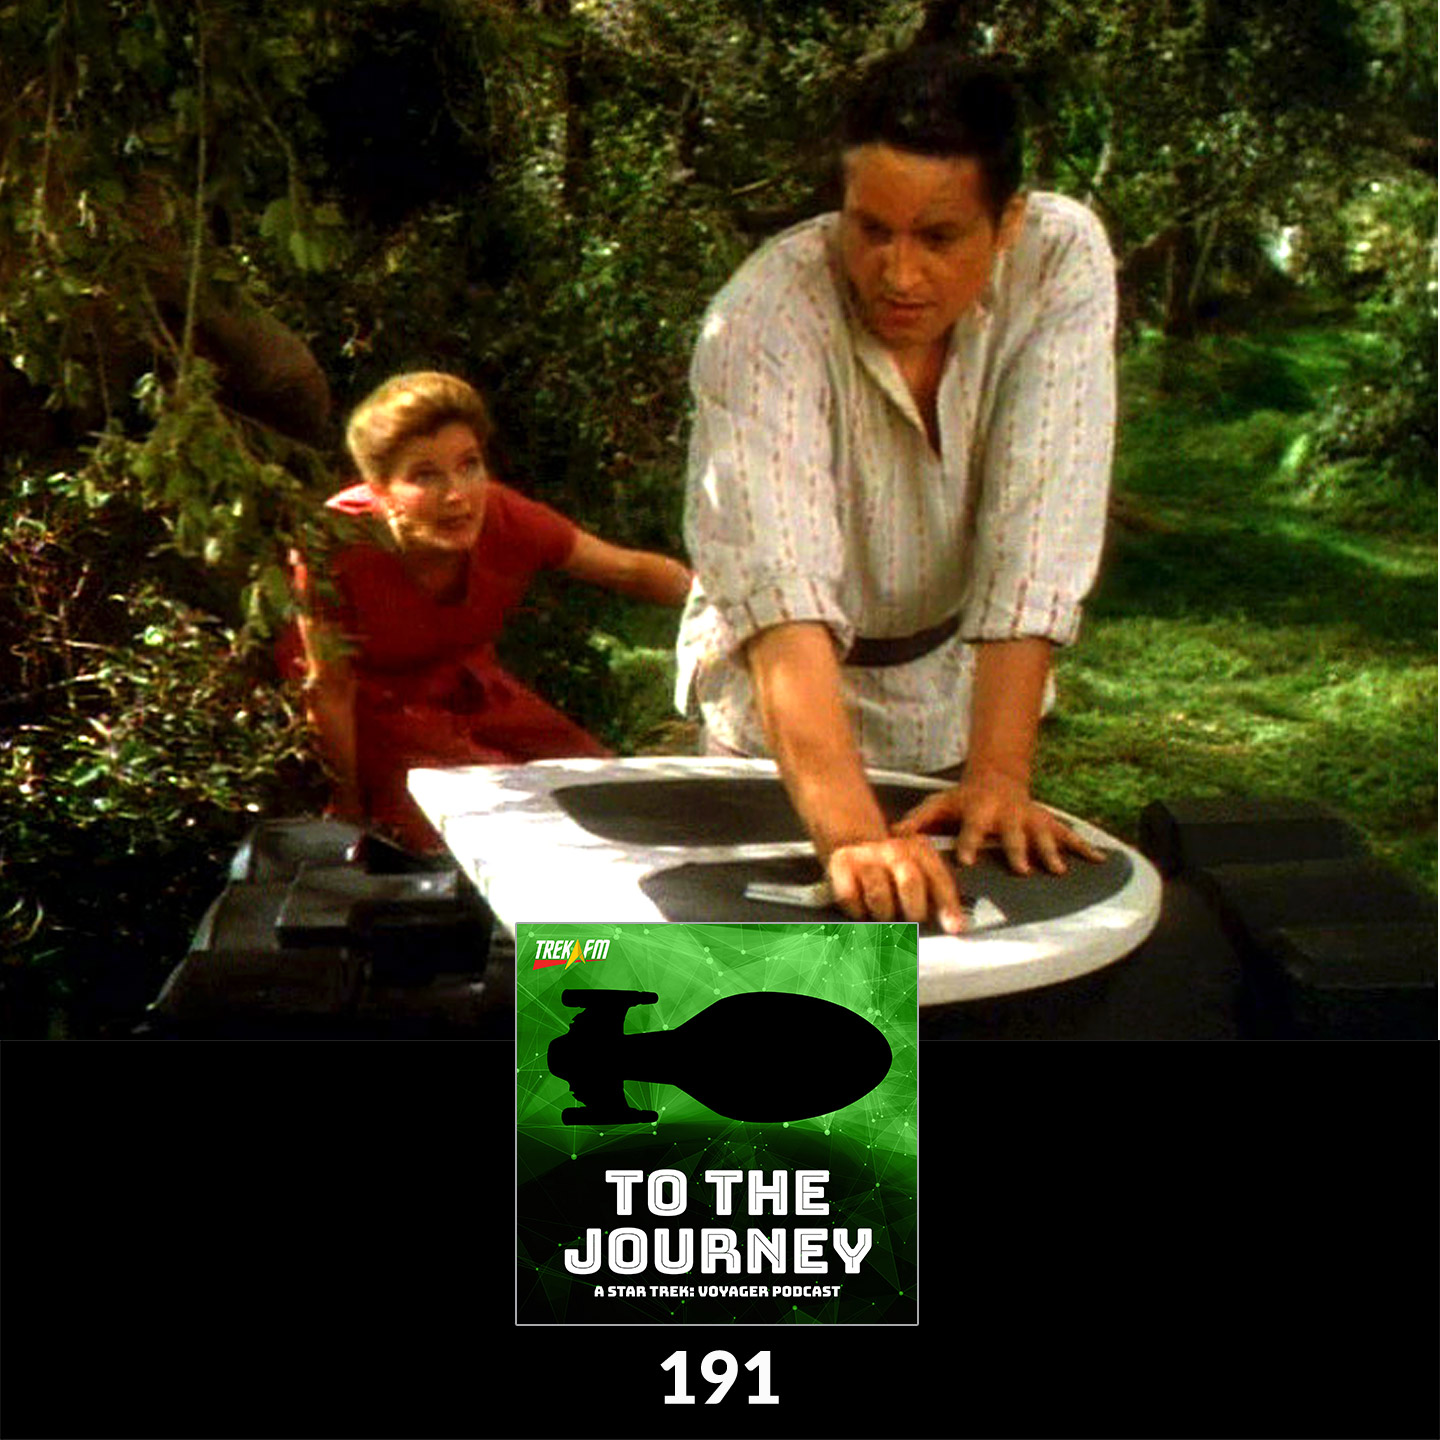 To The Journey 191: Whittling a Shuttle - Voyager Controversies.